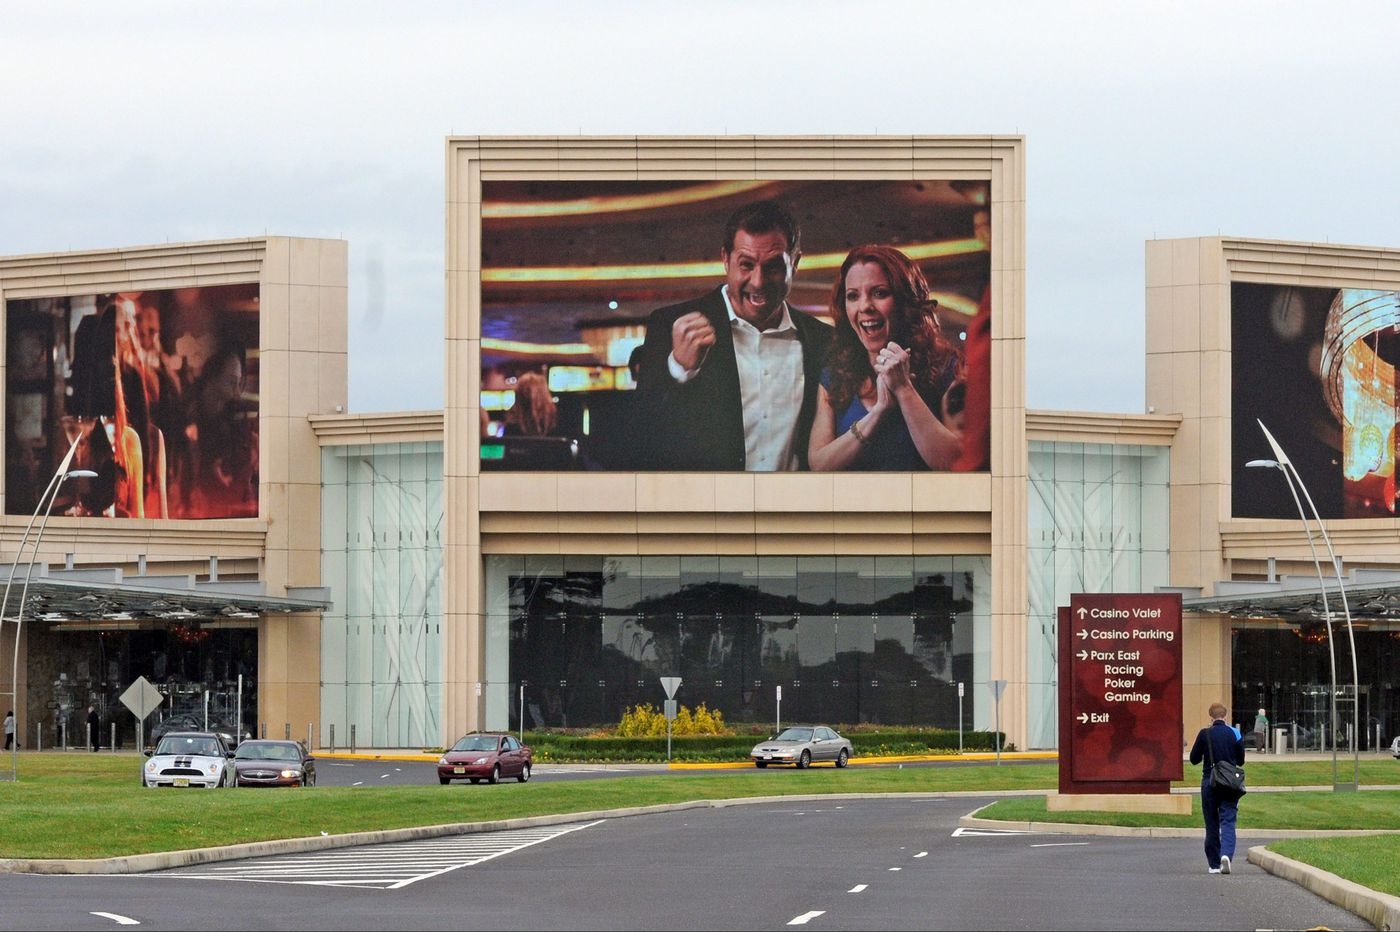 Pa. approves first sports-betting licenses for Parx, Hollywood casinos